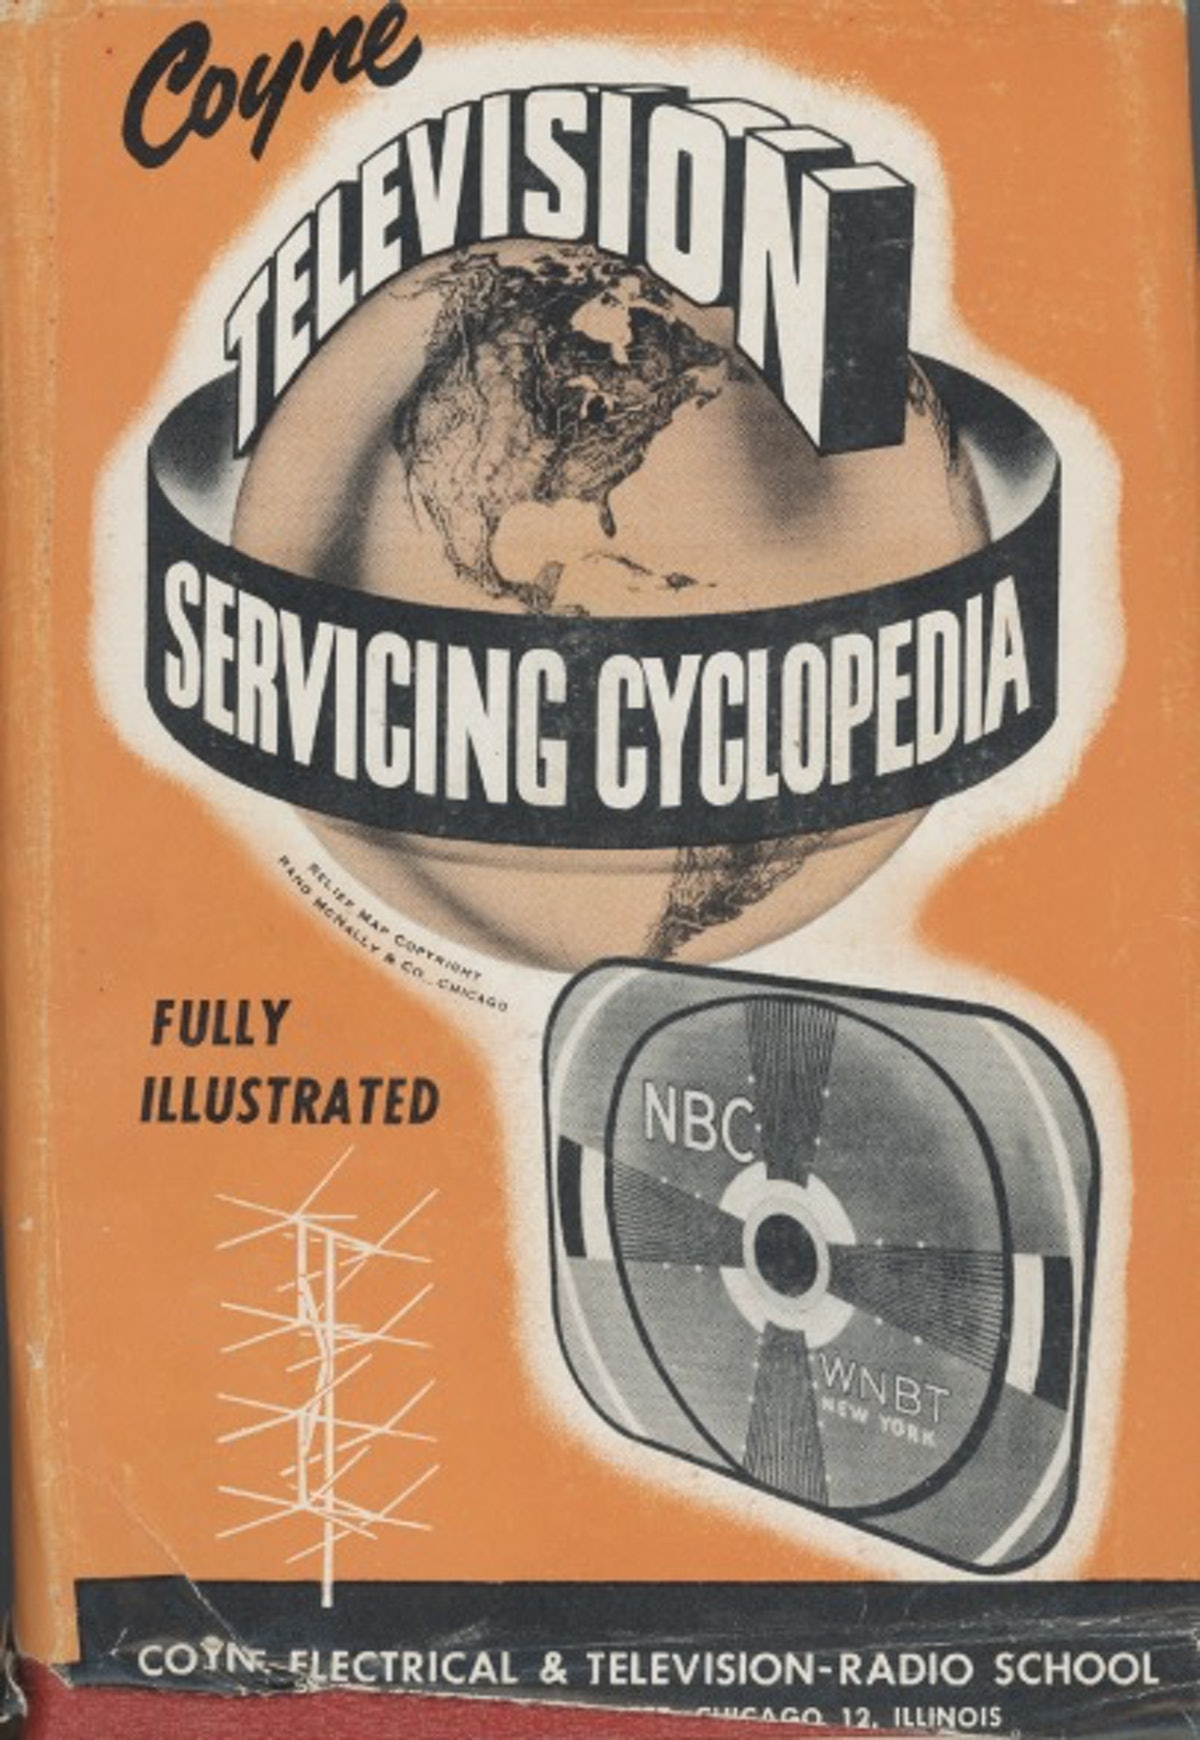 Television Servicing Cyclopedia